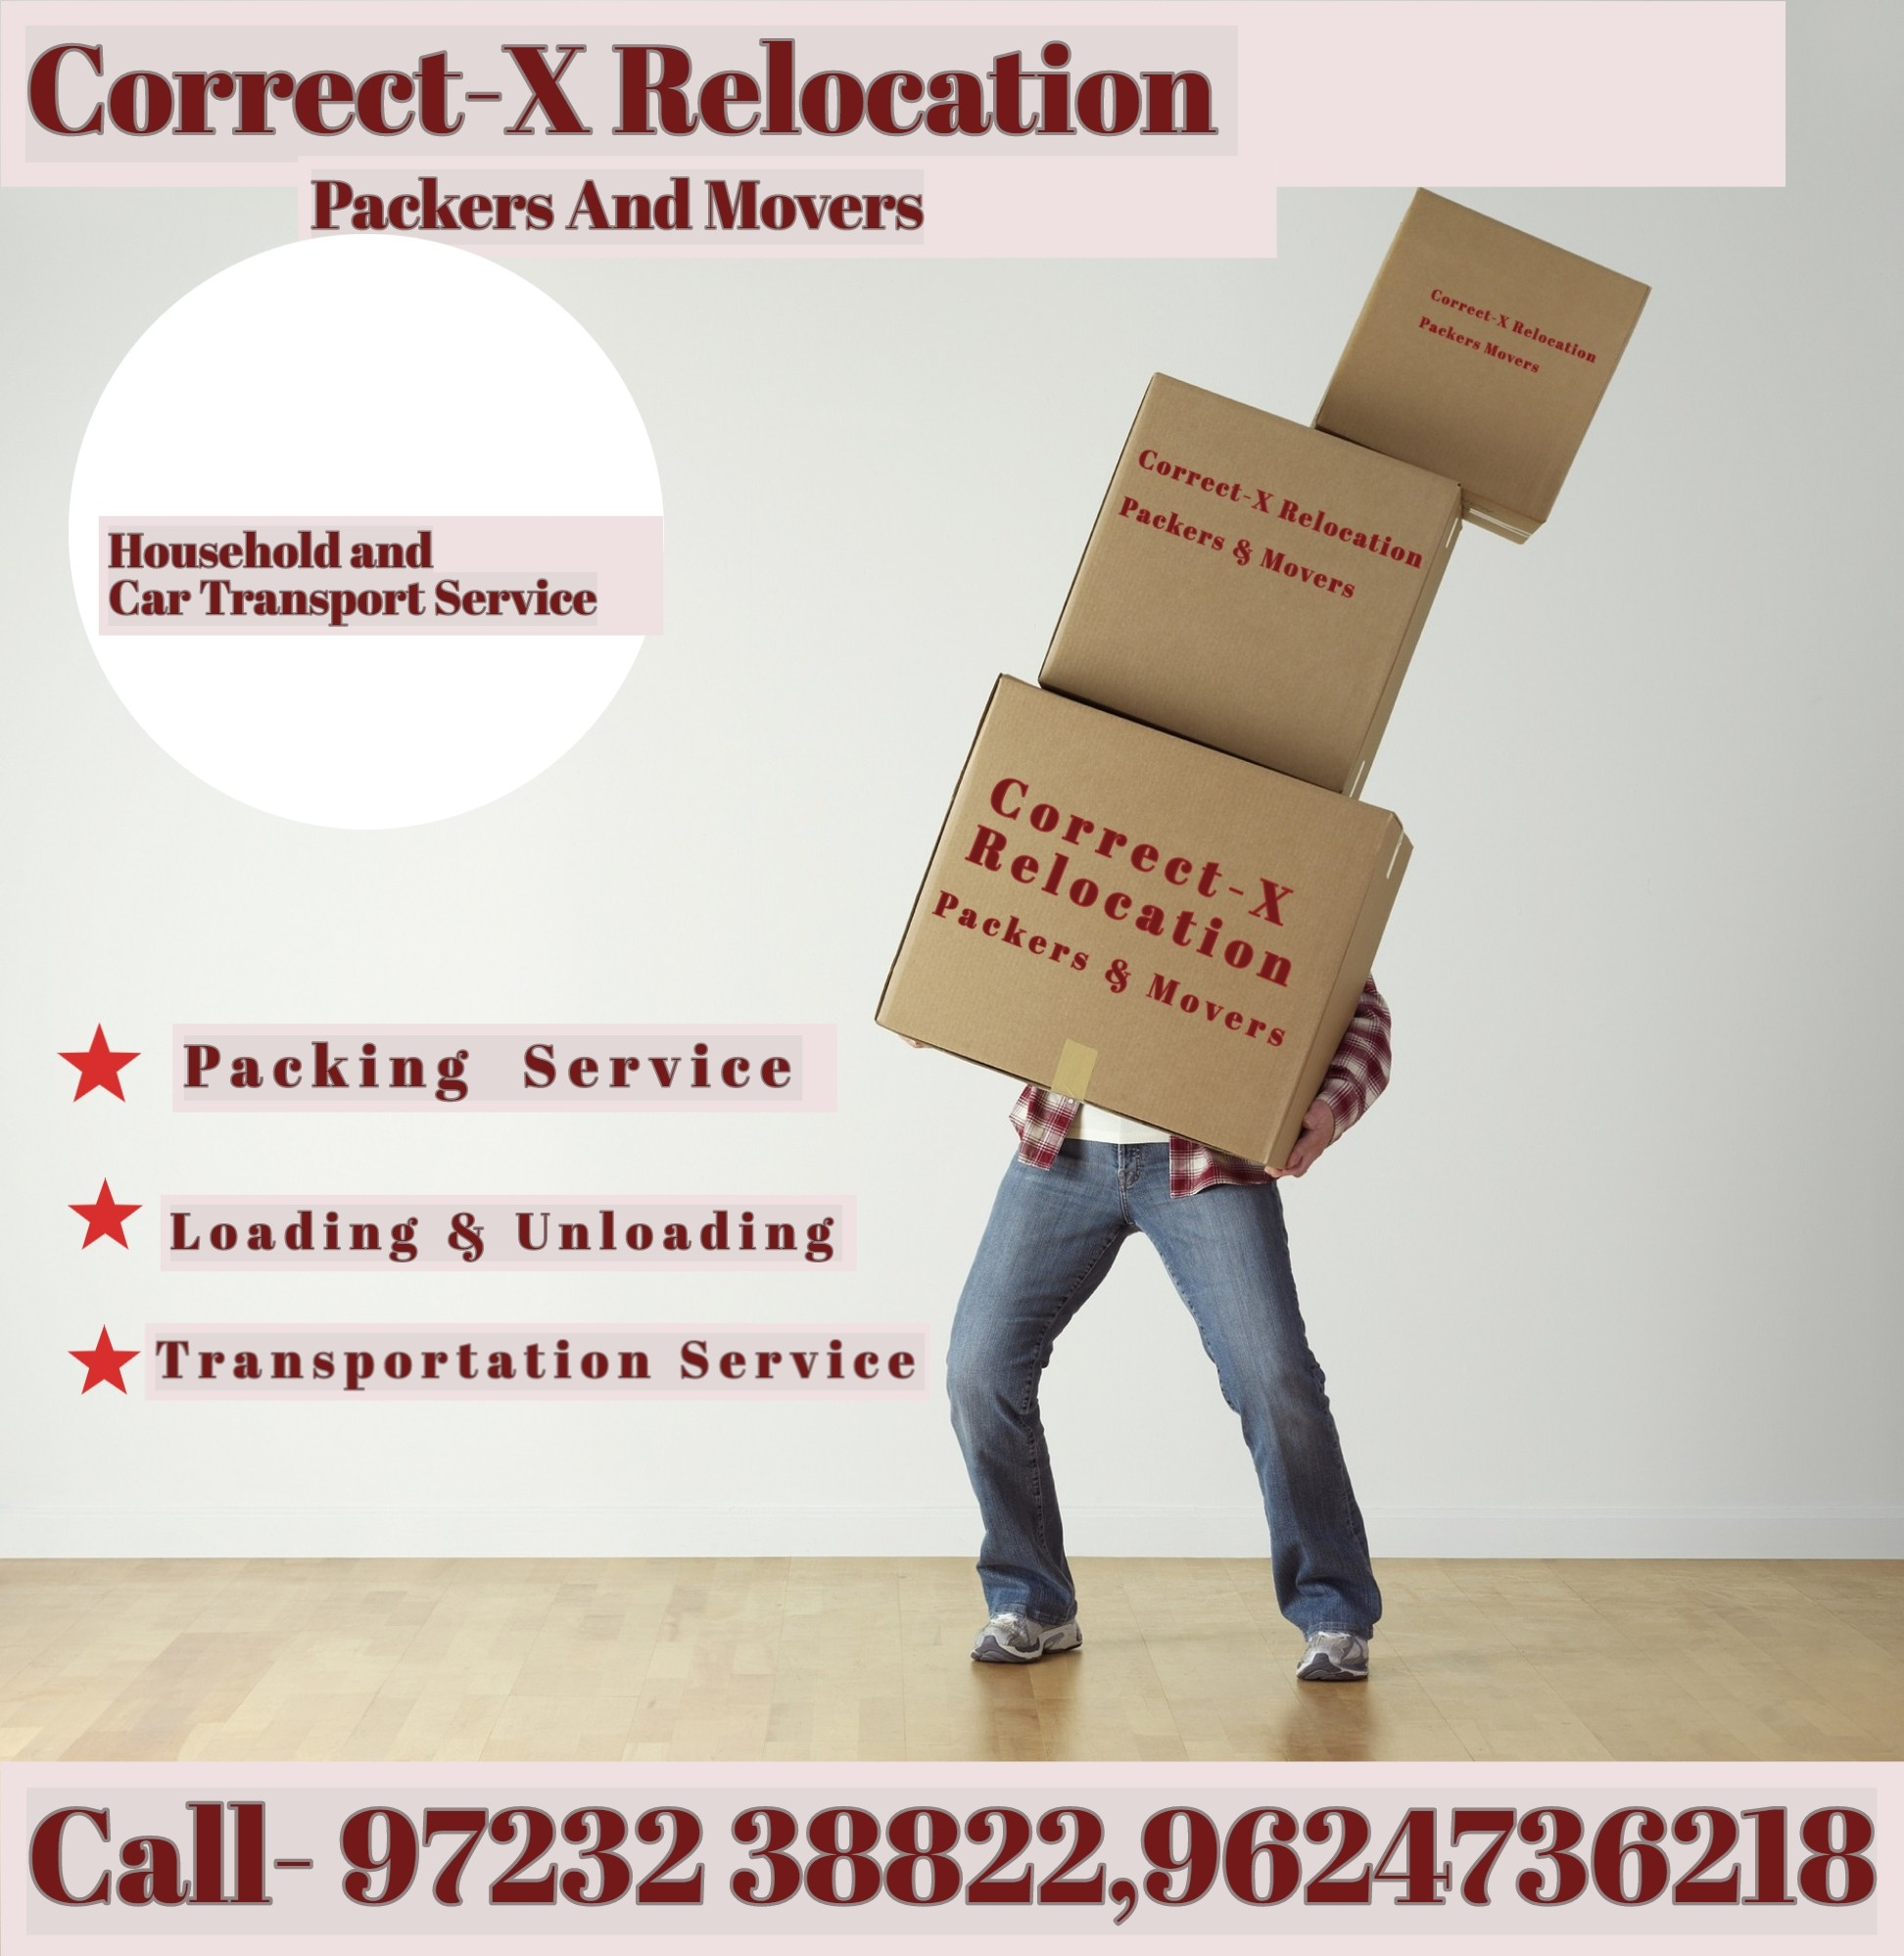 Correct X Relocation Packers and Movers